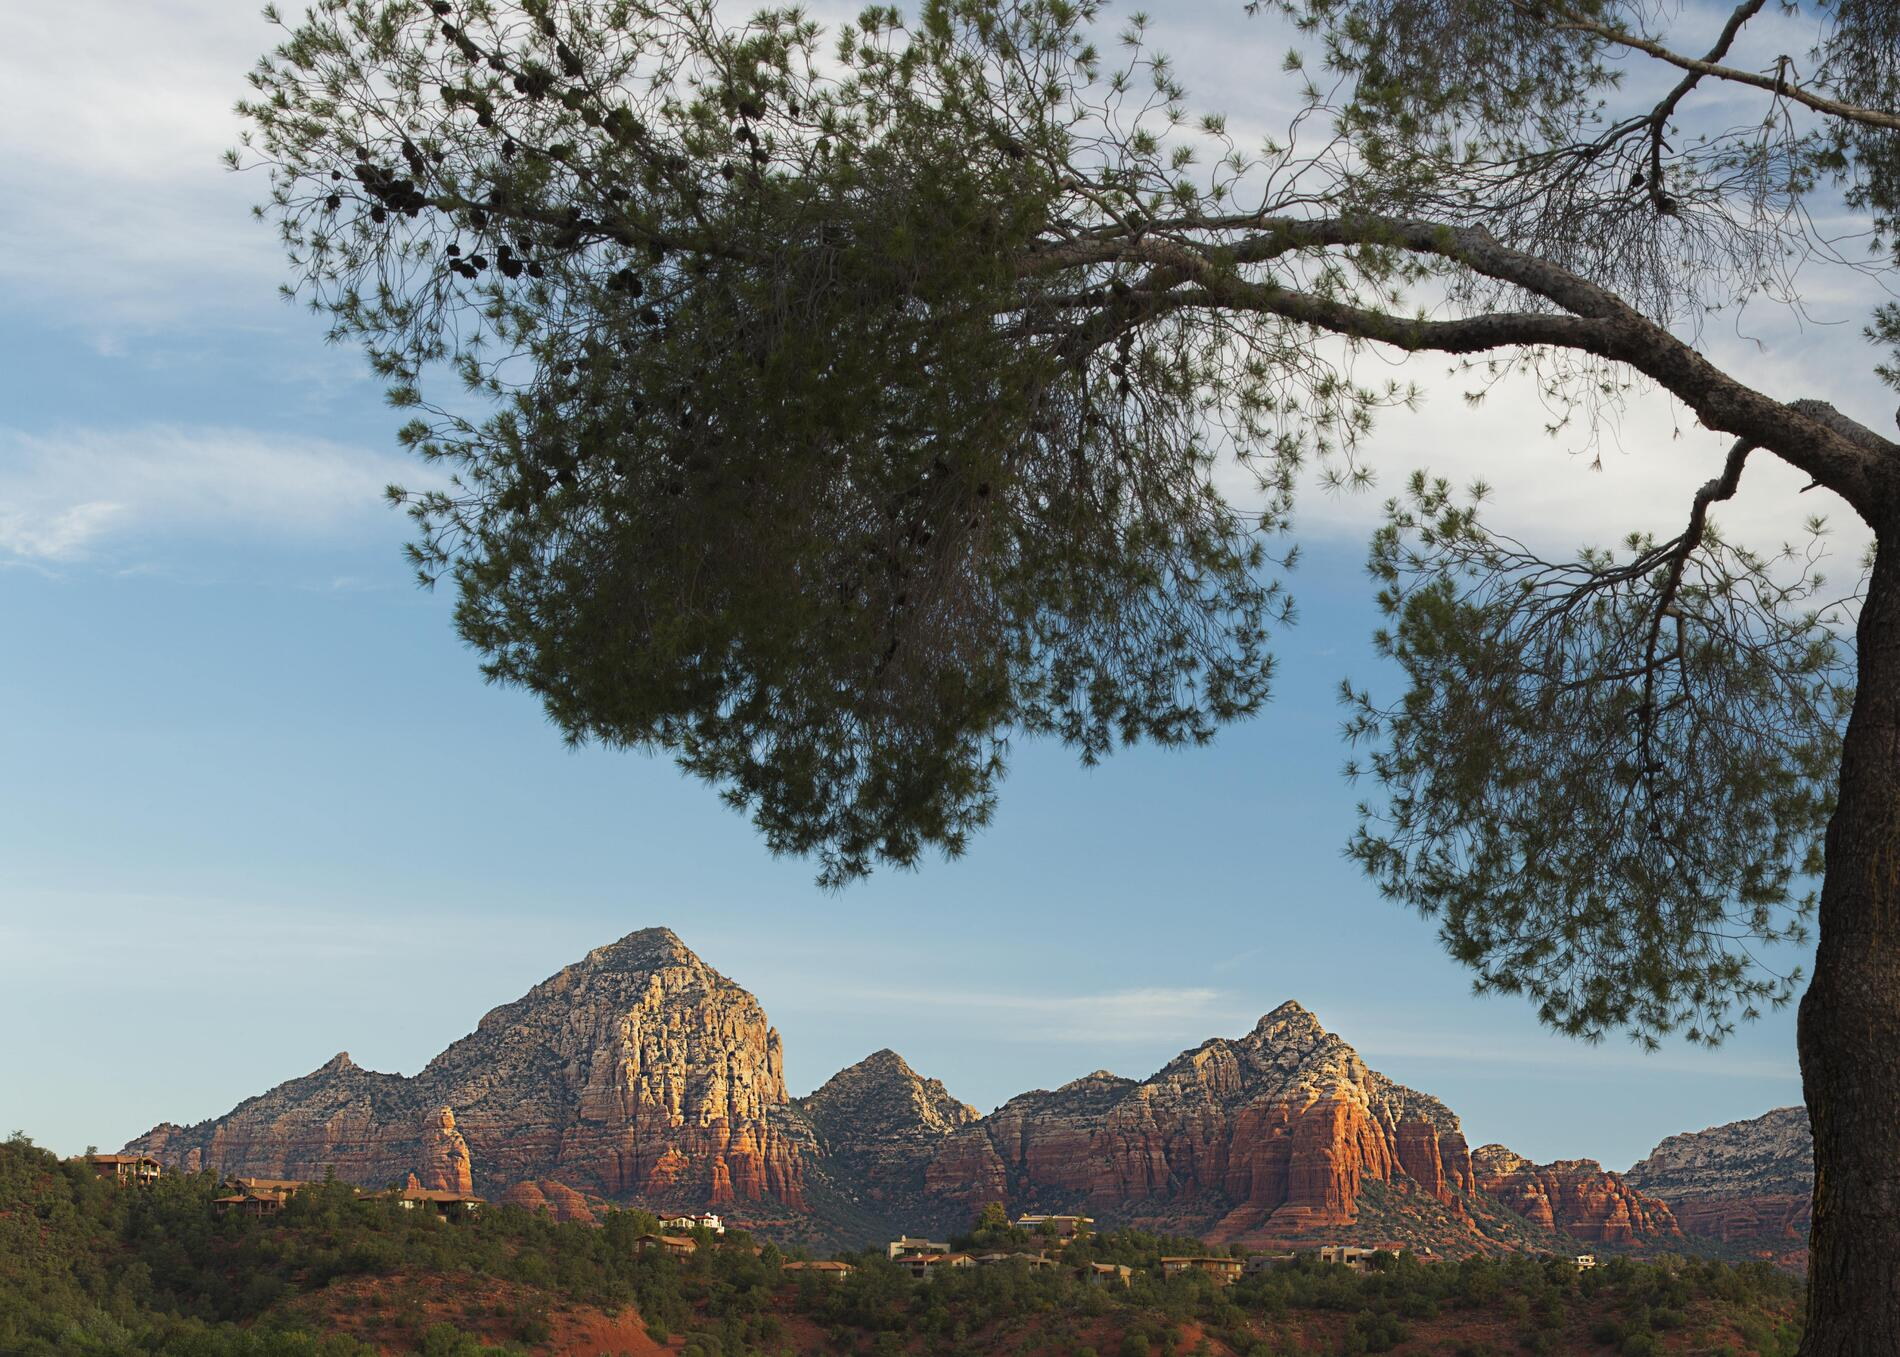 Panoramic view of the Red Rocks with tree in foreground.